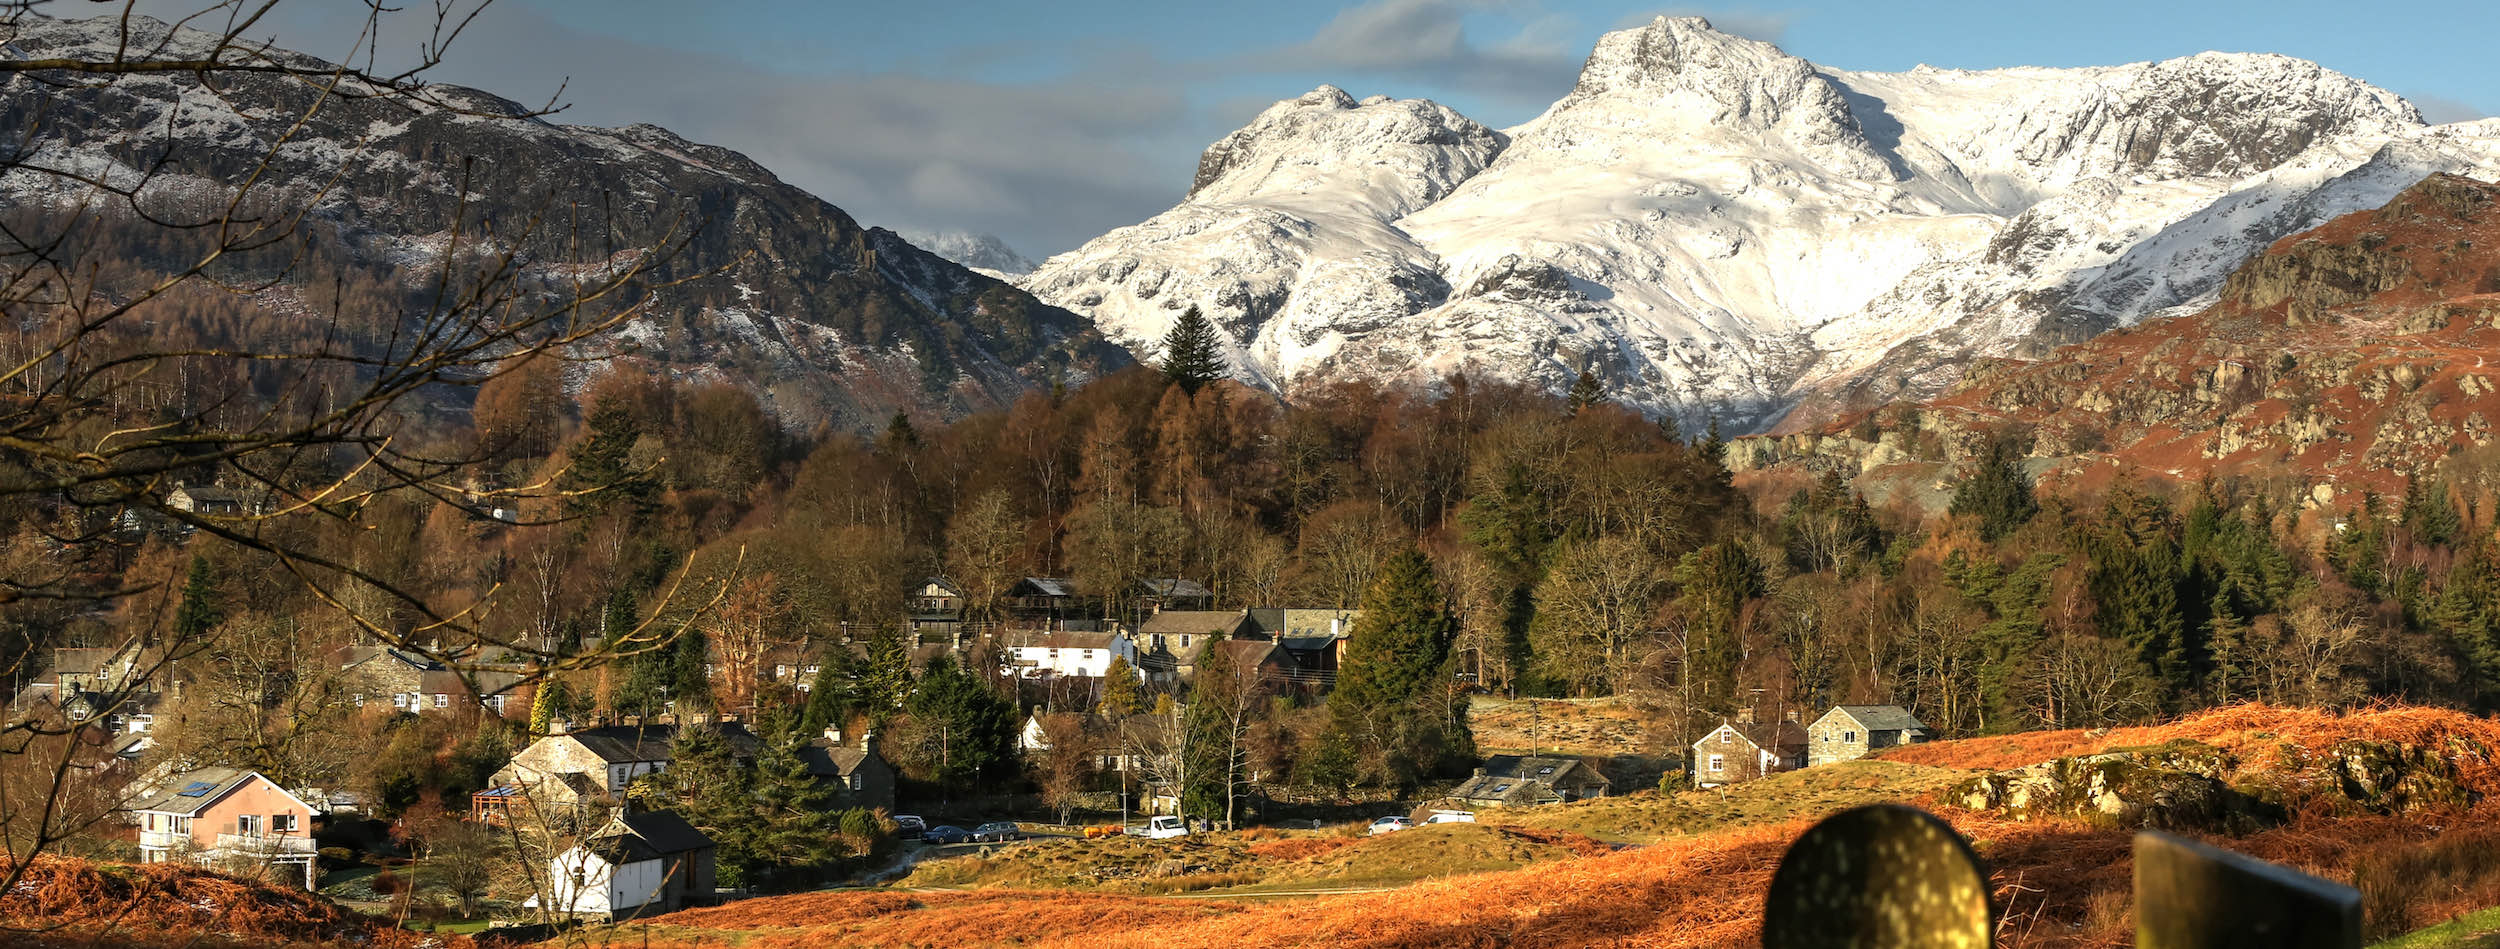 Townfoot Cottage, Elterwater